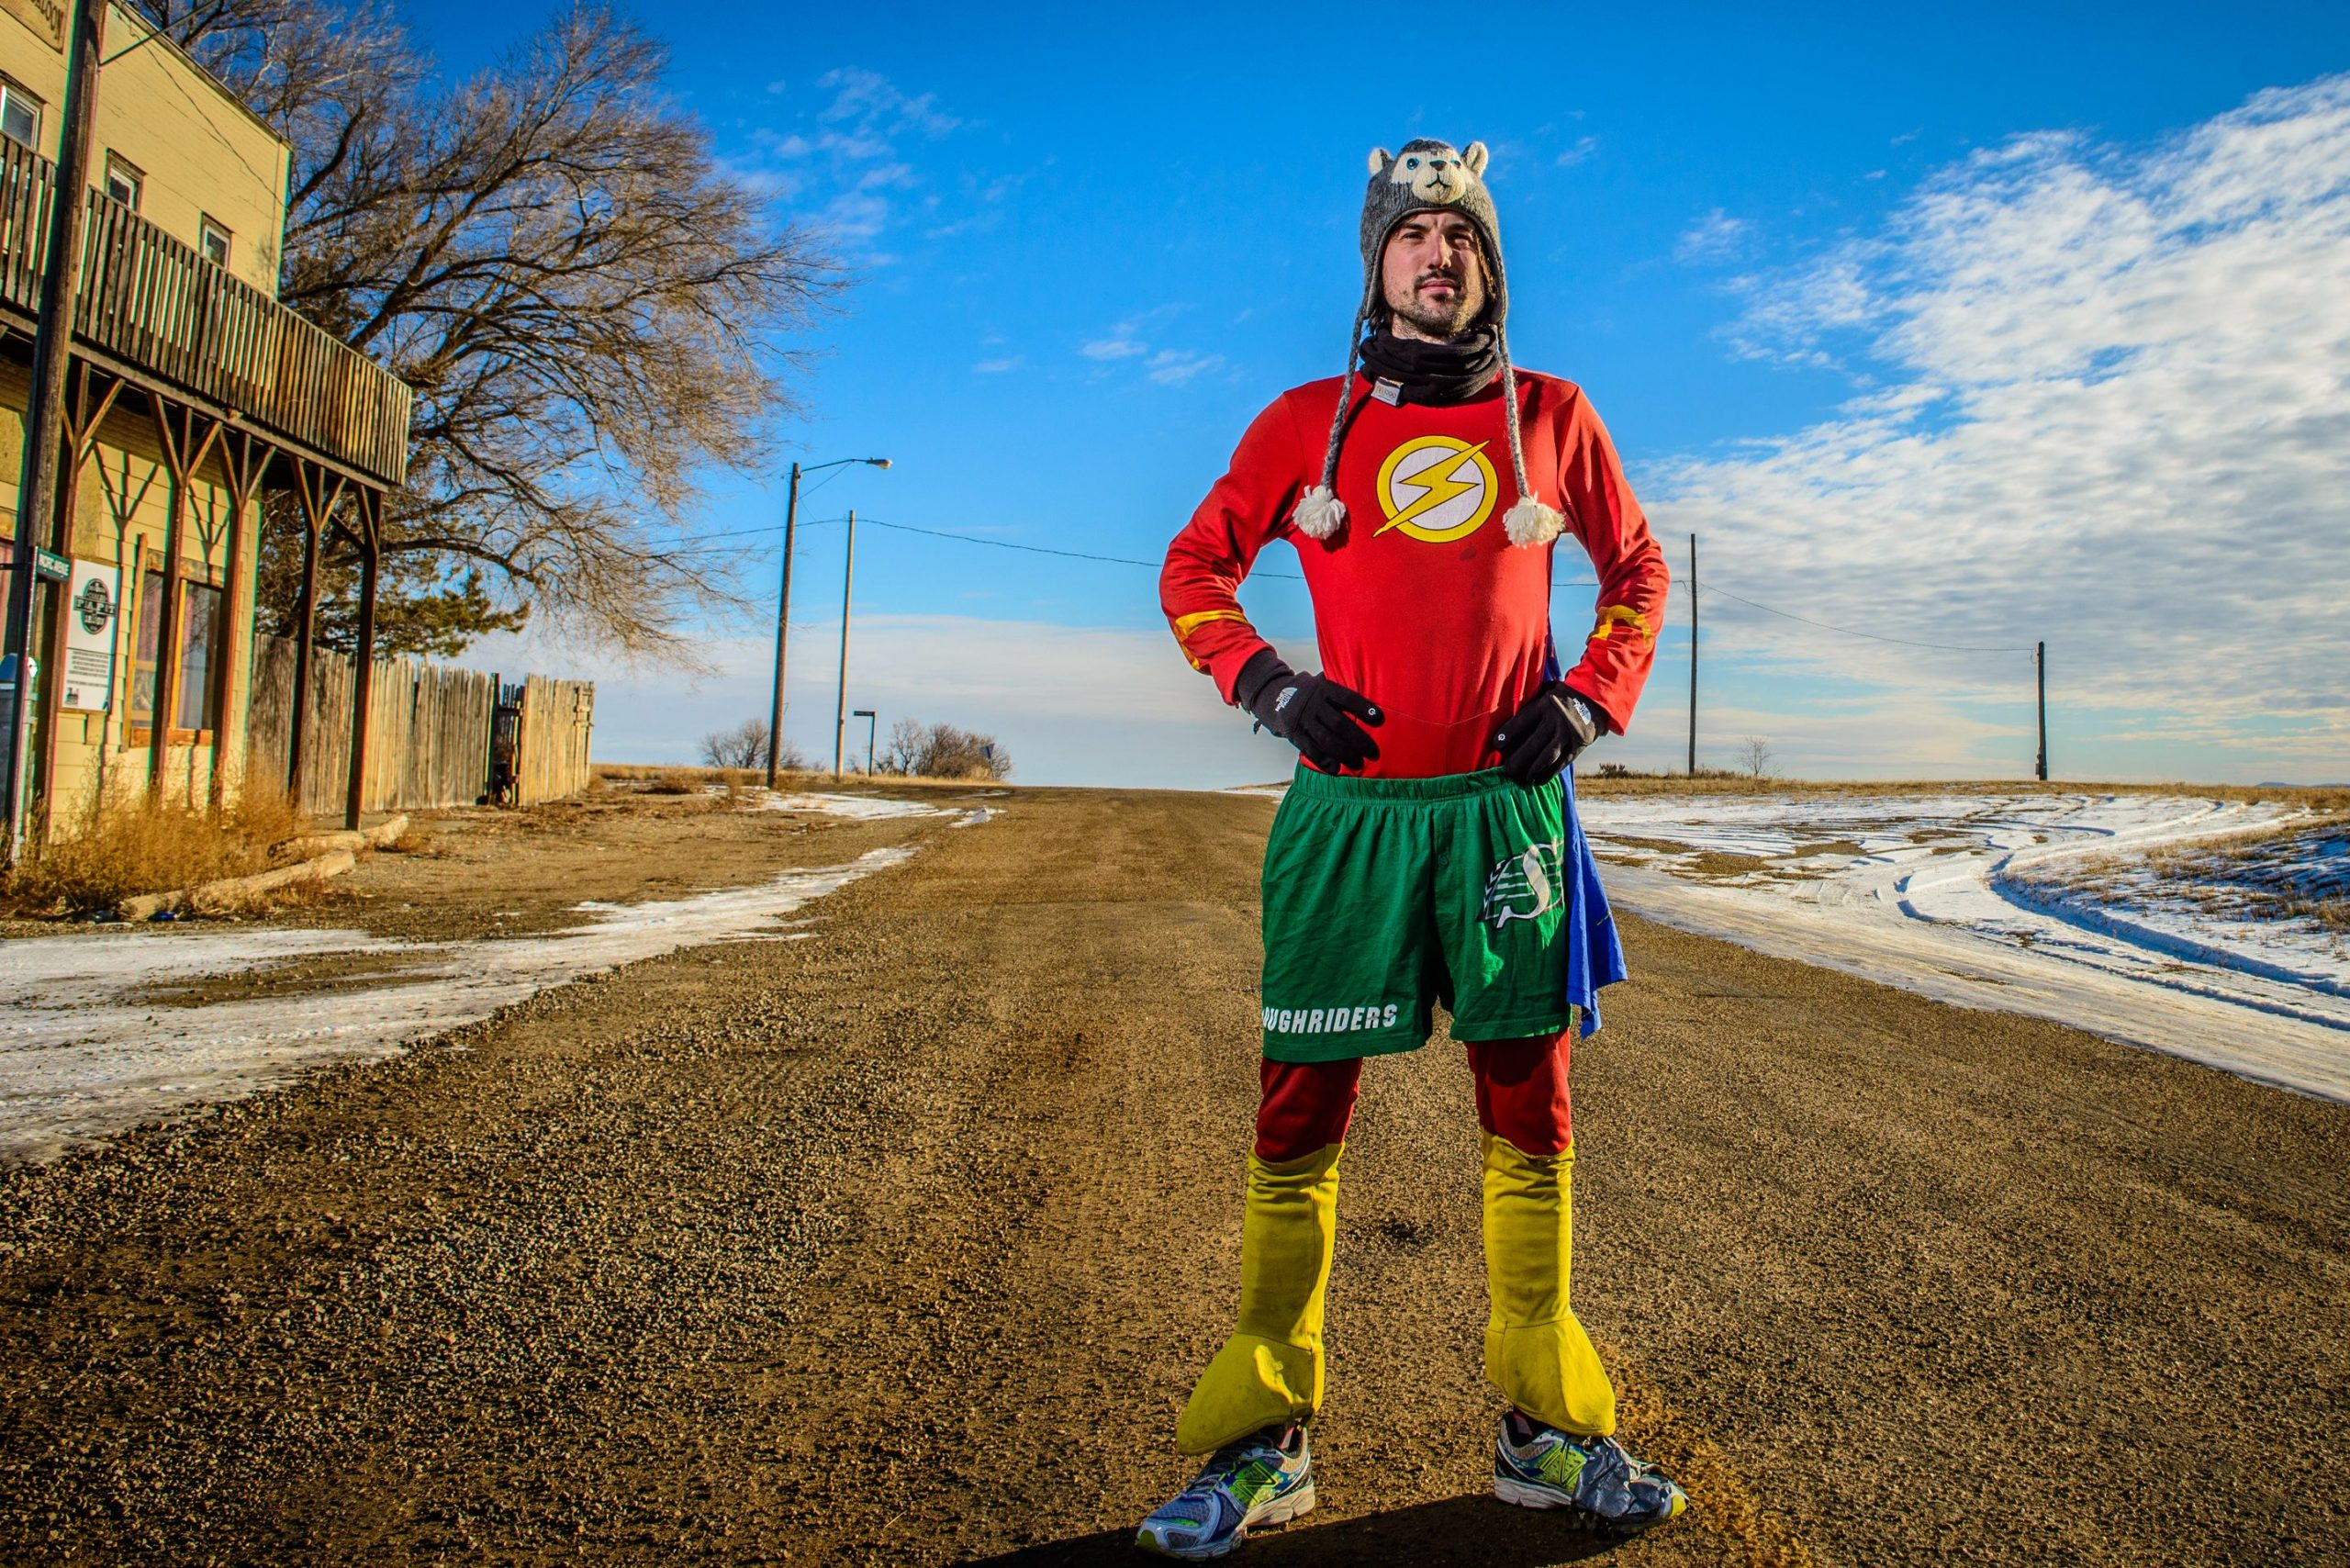 Motivational Speaker, Jamie MacDonald, known as Adventureman standing in the middle of an empty road